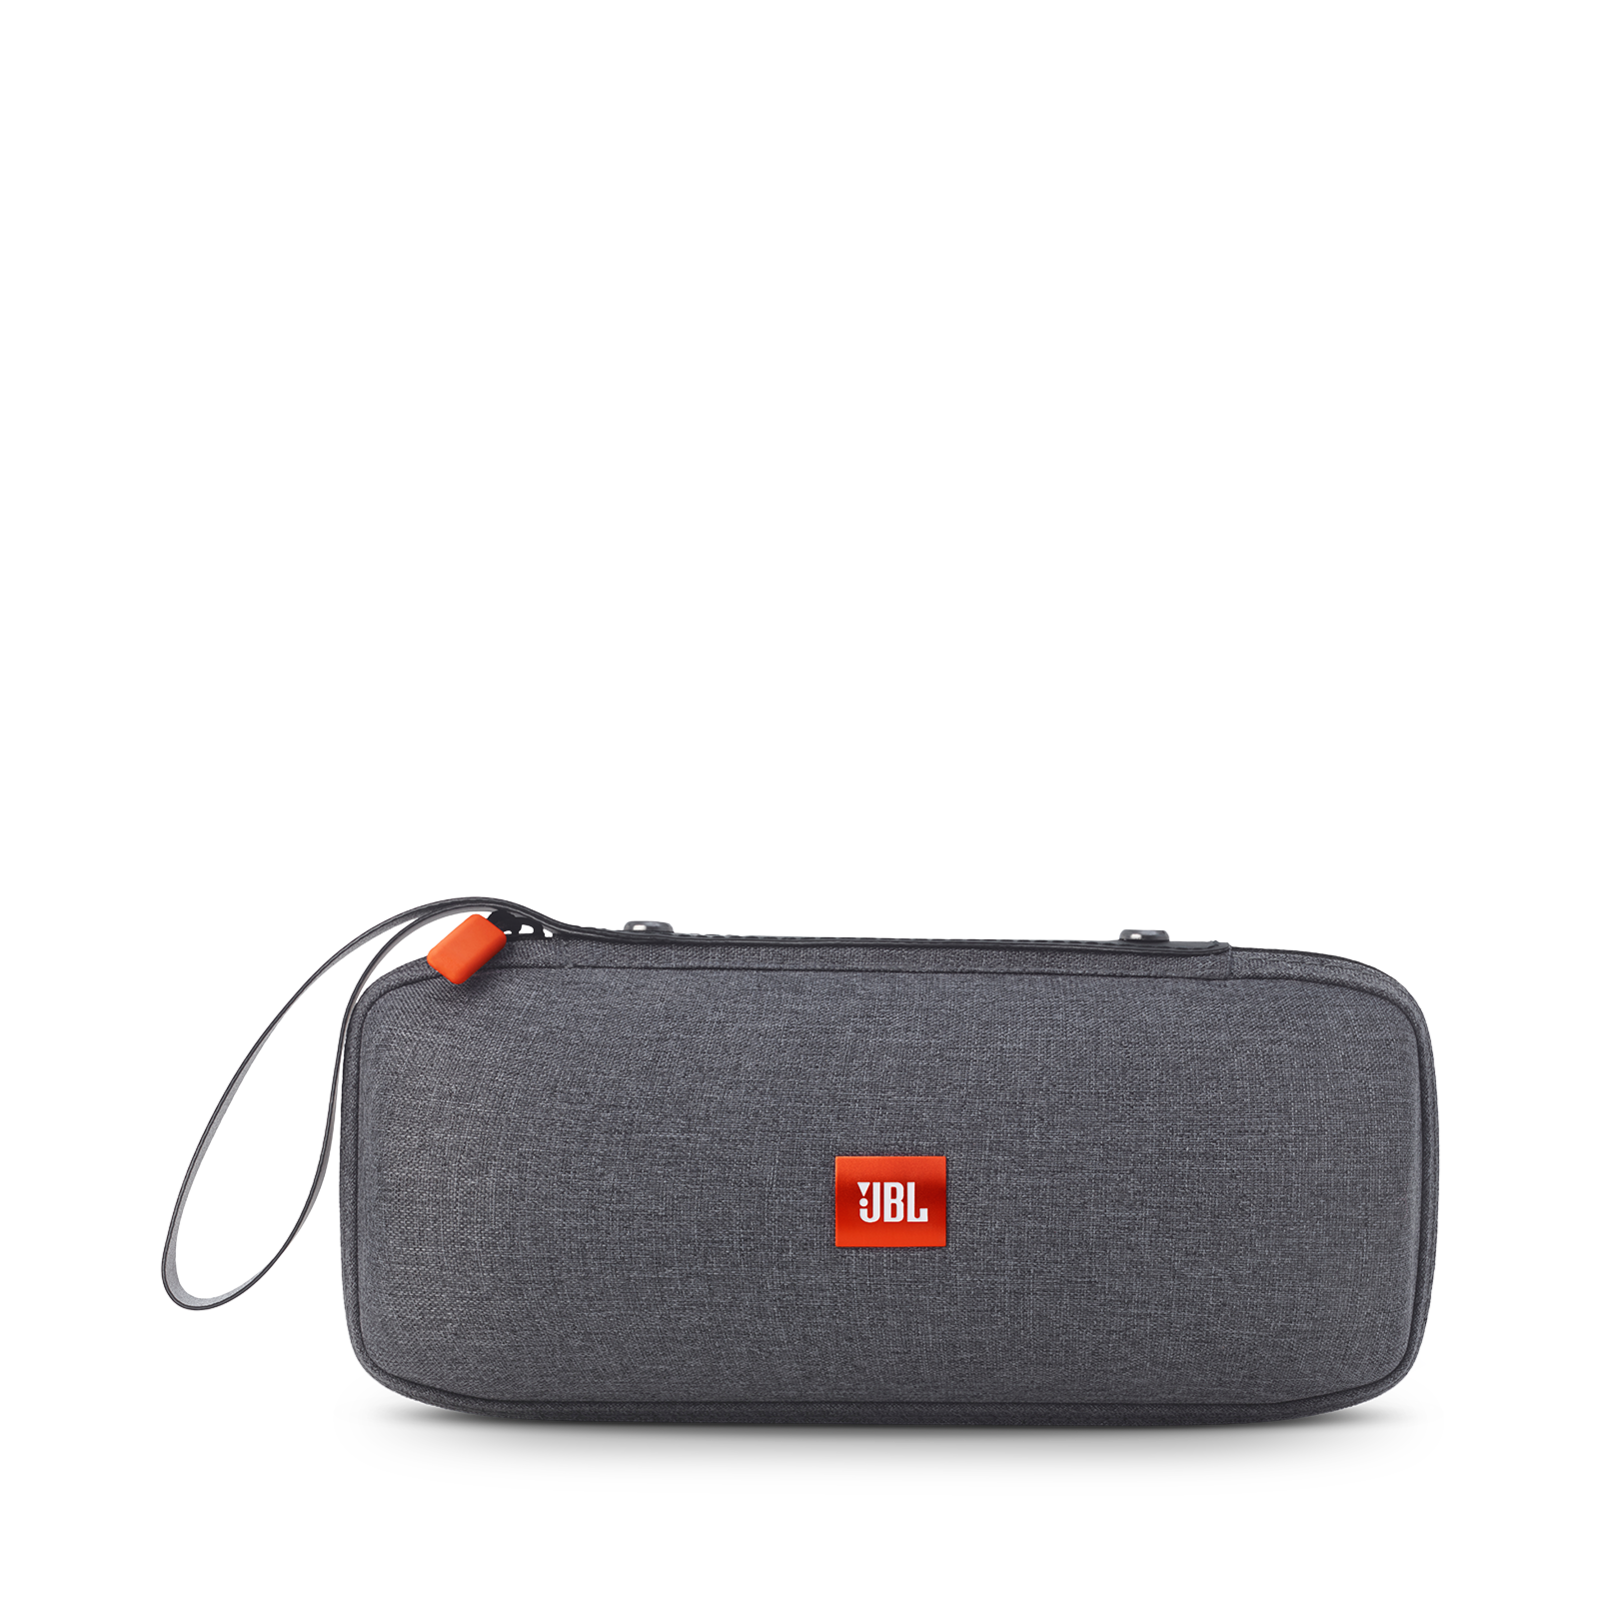 Charge Carrying Case - Grey - Carrying Case for JBL Charge, Charge 2 and Charge 2+ - Hero